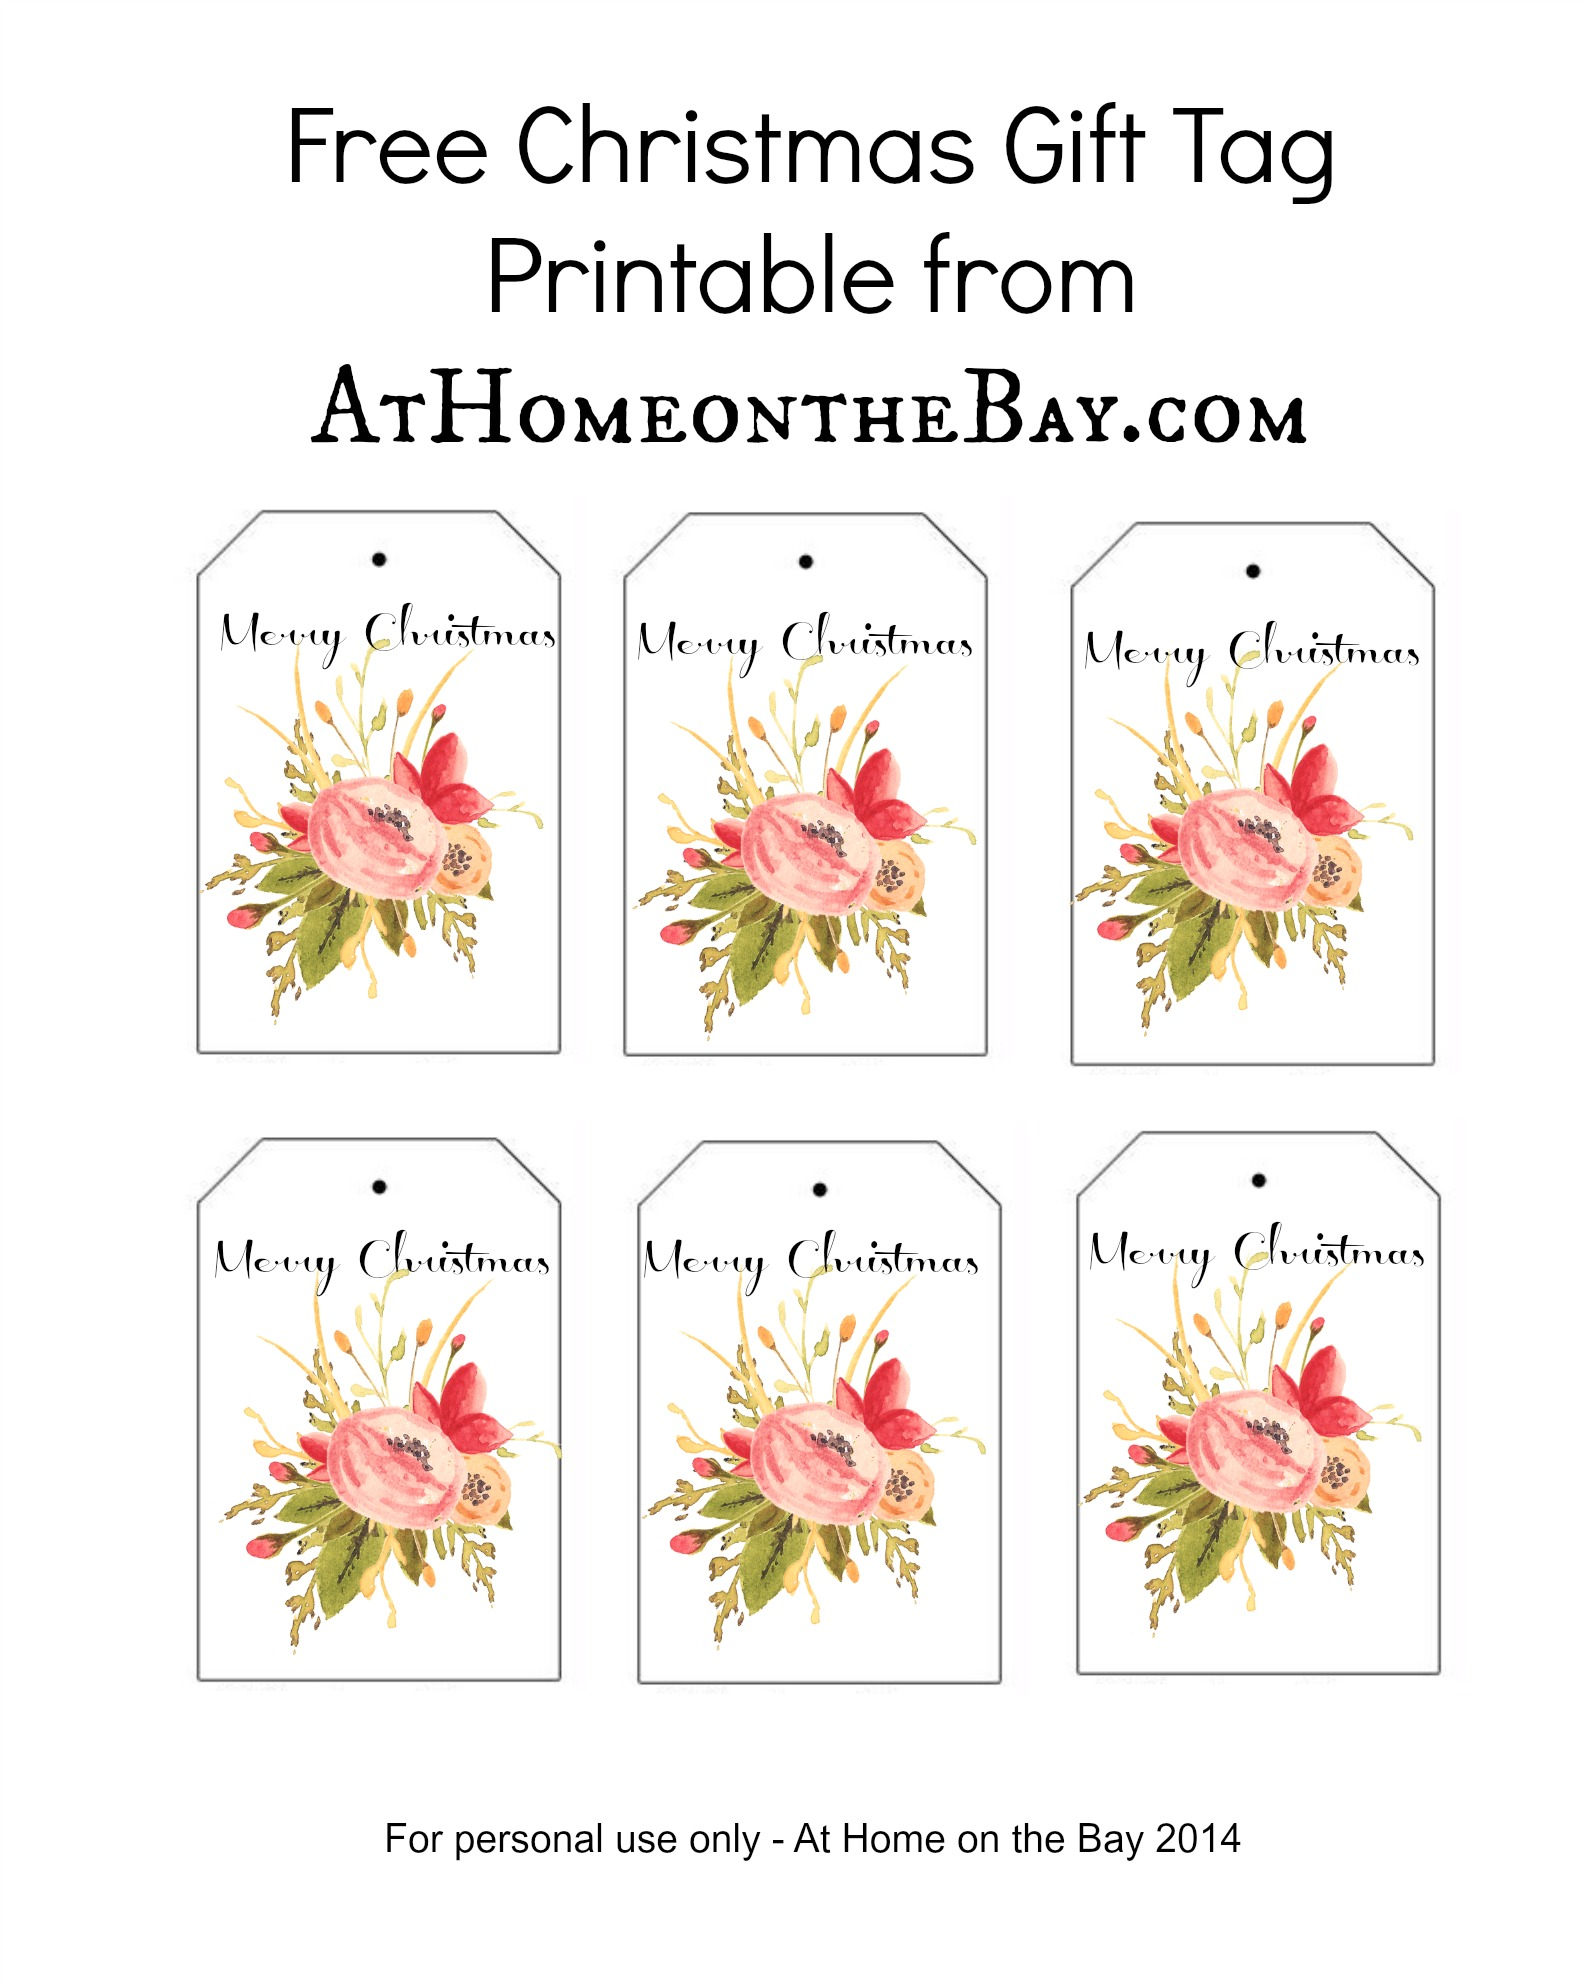 Wedding Gift Tags Free Printable : Christmas Gift Tag Printable